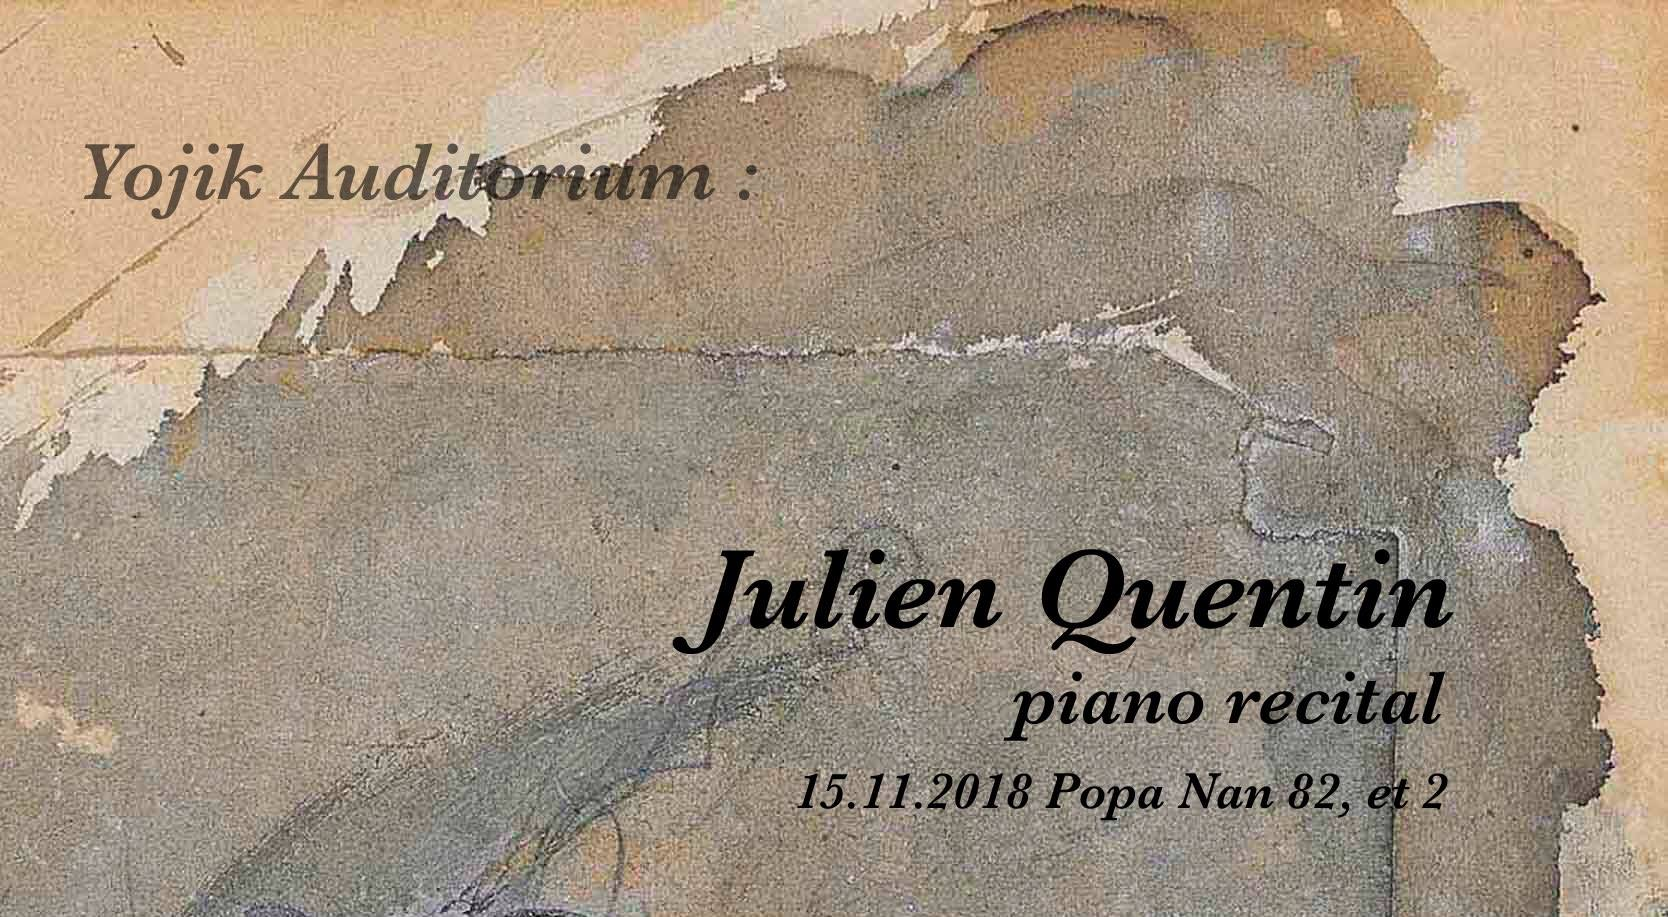 Piano recital with Julien Quentin